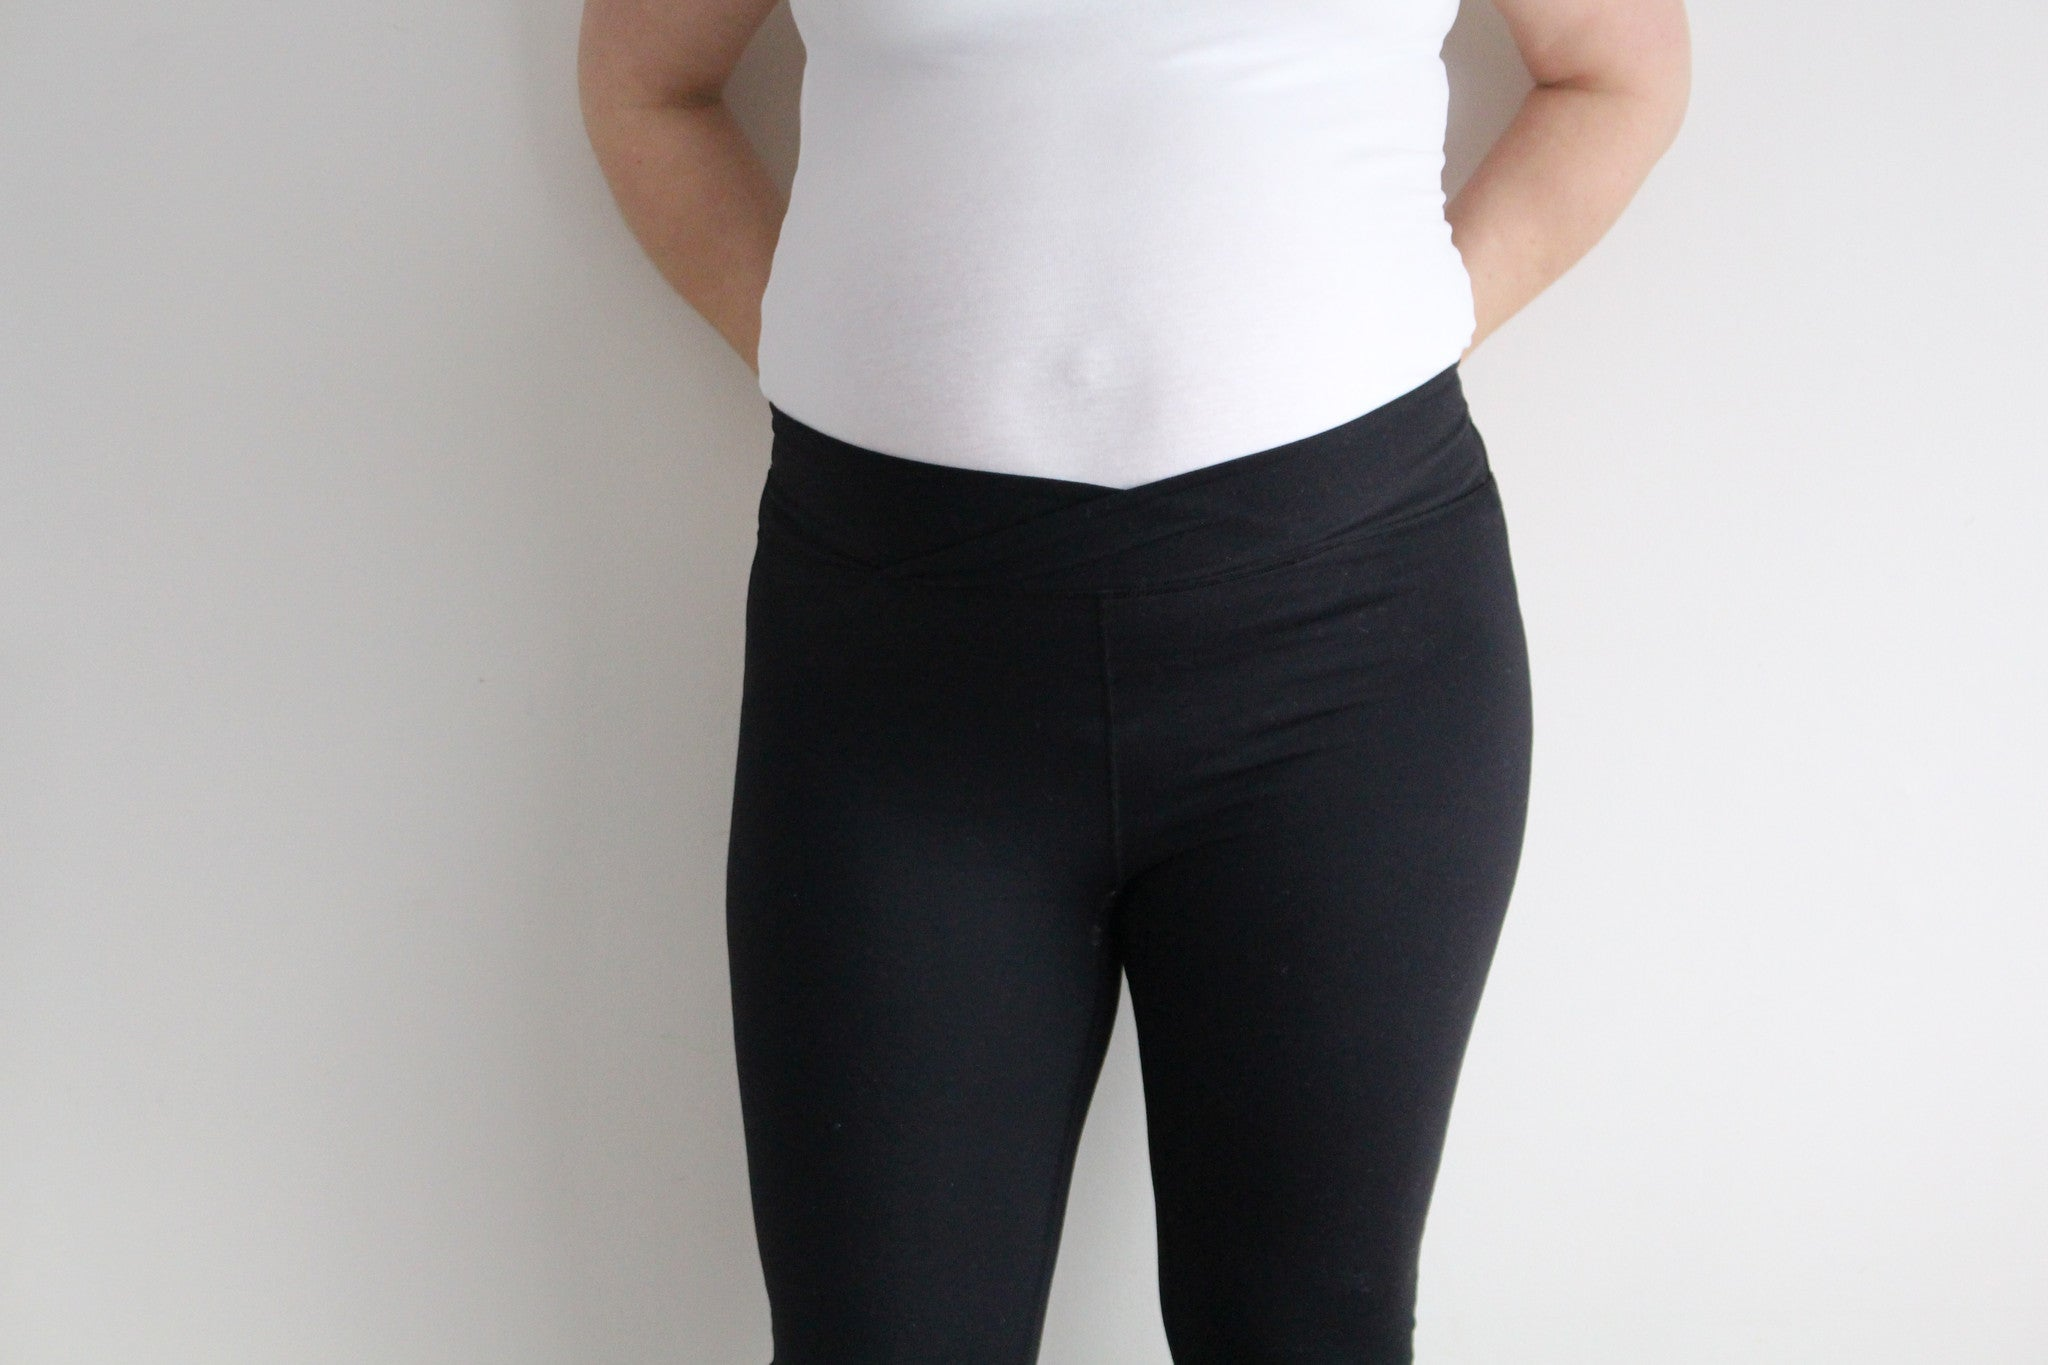 high waisted maternity activewear legging postpartum pregnancy over the belly pregnant baby bump